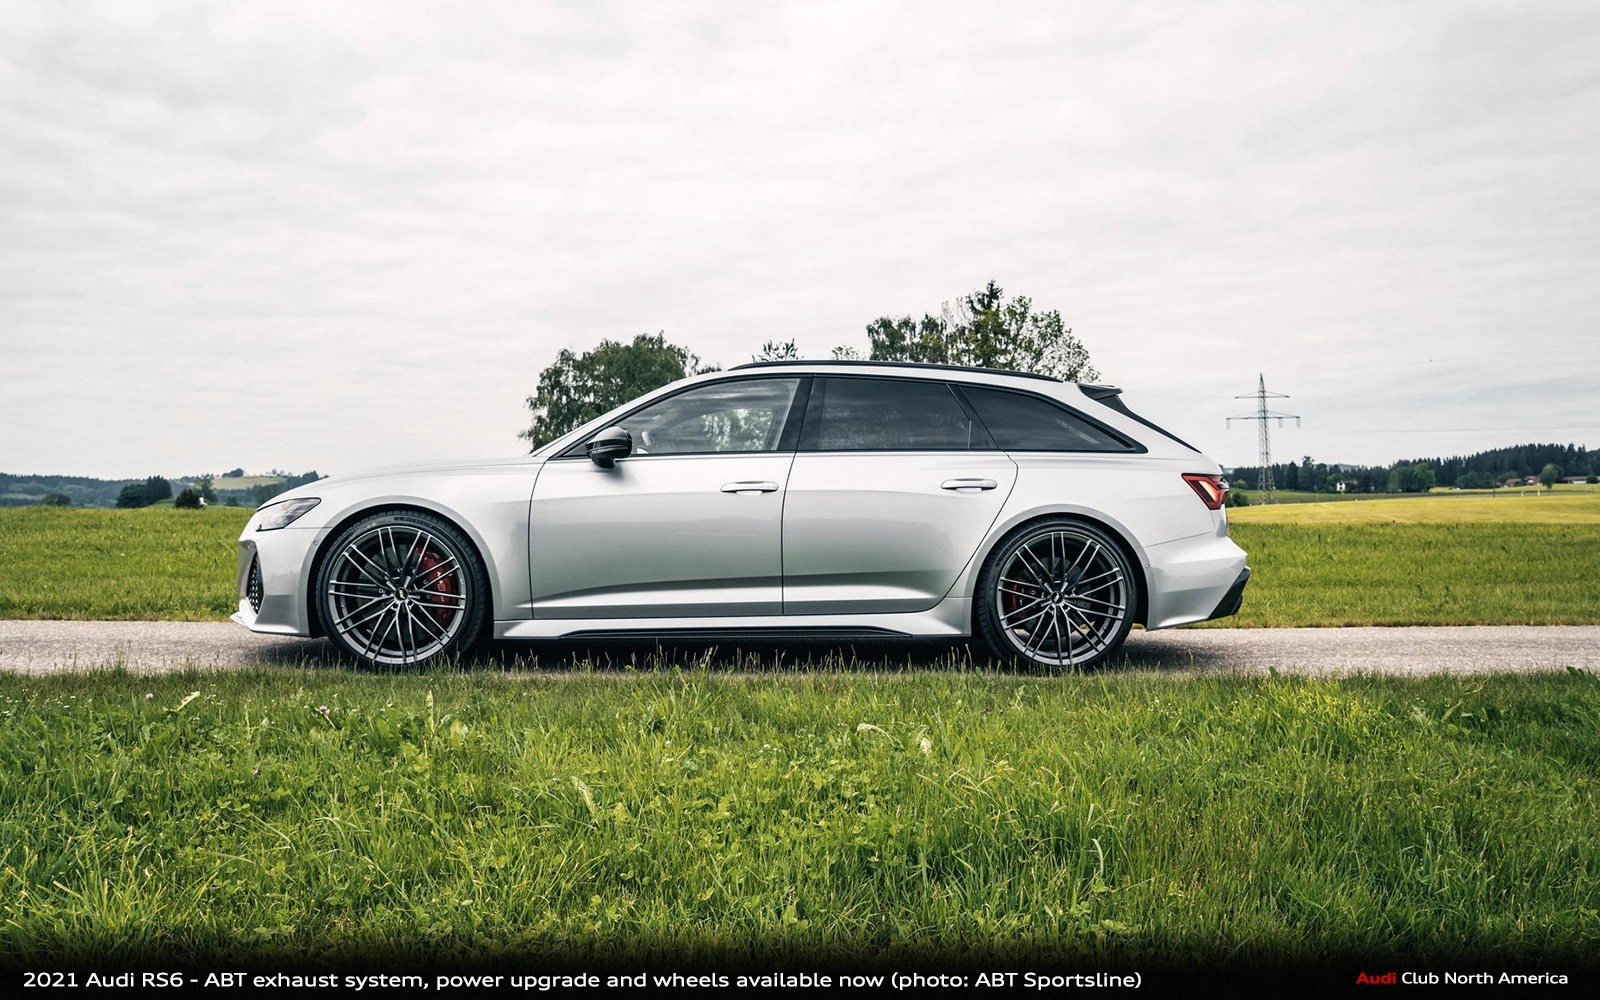 2021 Audi RS 6 Avant - ABT exhaust system, power upgrade ...